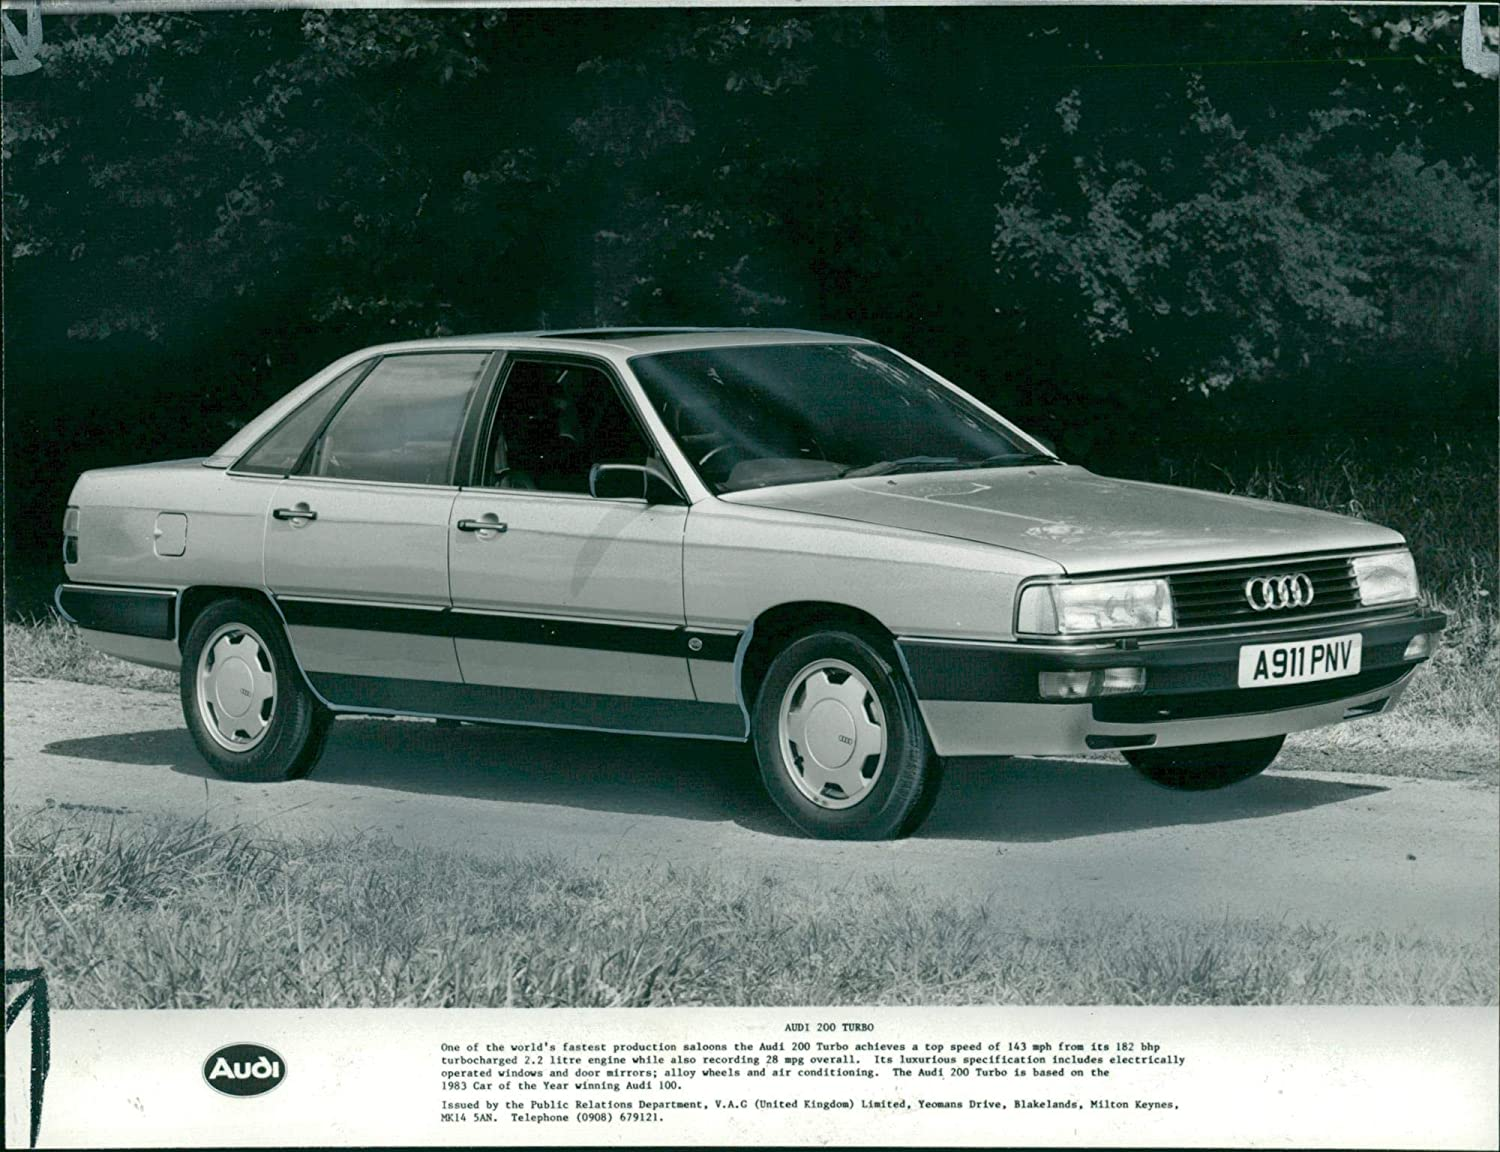 Amazon.com: Vintage photo of Audi 200 turbo handsome lines.: Entertainment Collectibles